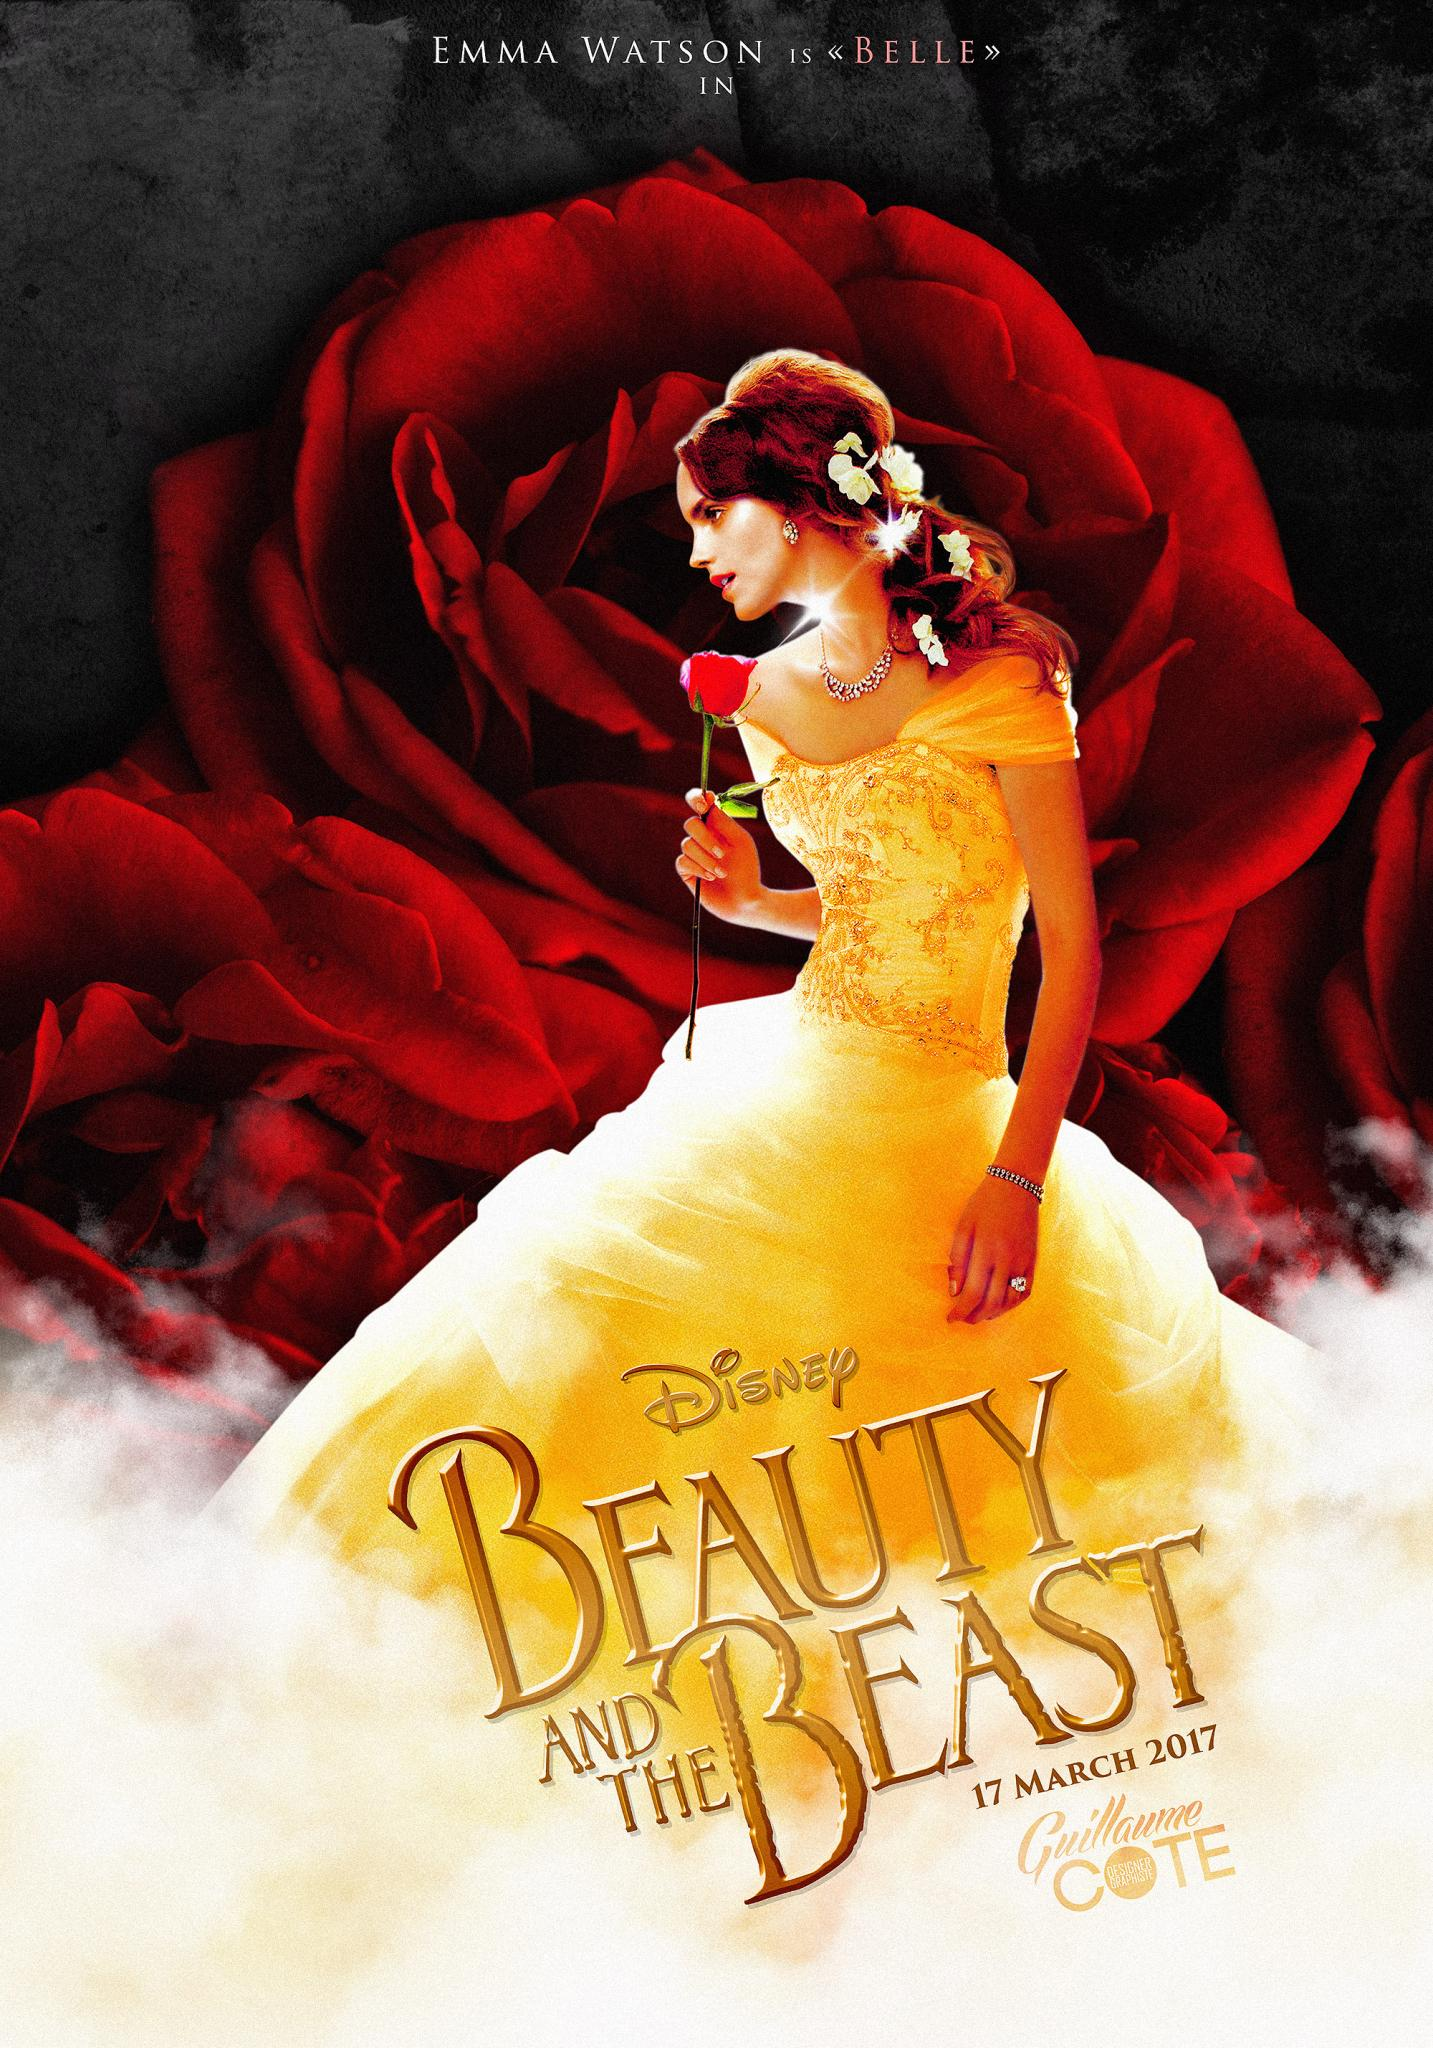 La-Belle-et-la-Bete-Beauty-and-The-Beast-march-2017-Poster-With-Emma-Watson